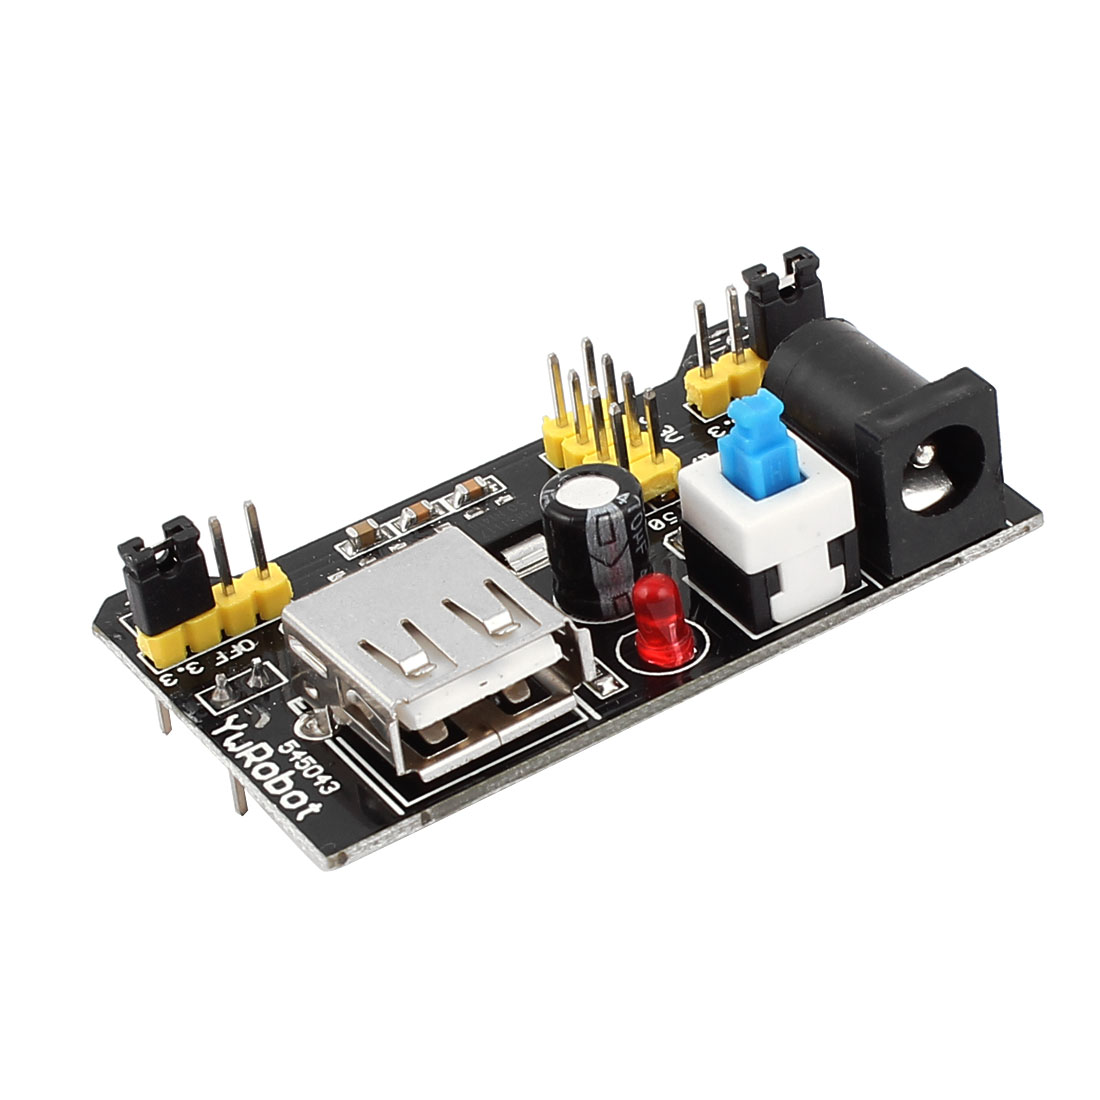 3.3V/5V Breadboard Power Supply Module for MB102 Breadboard